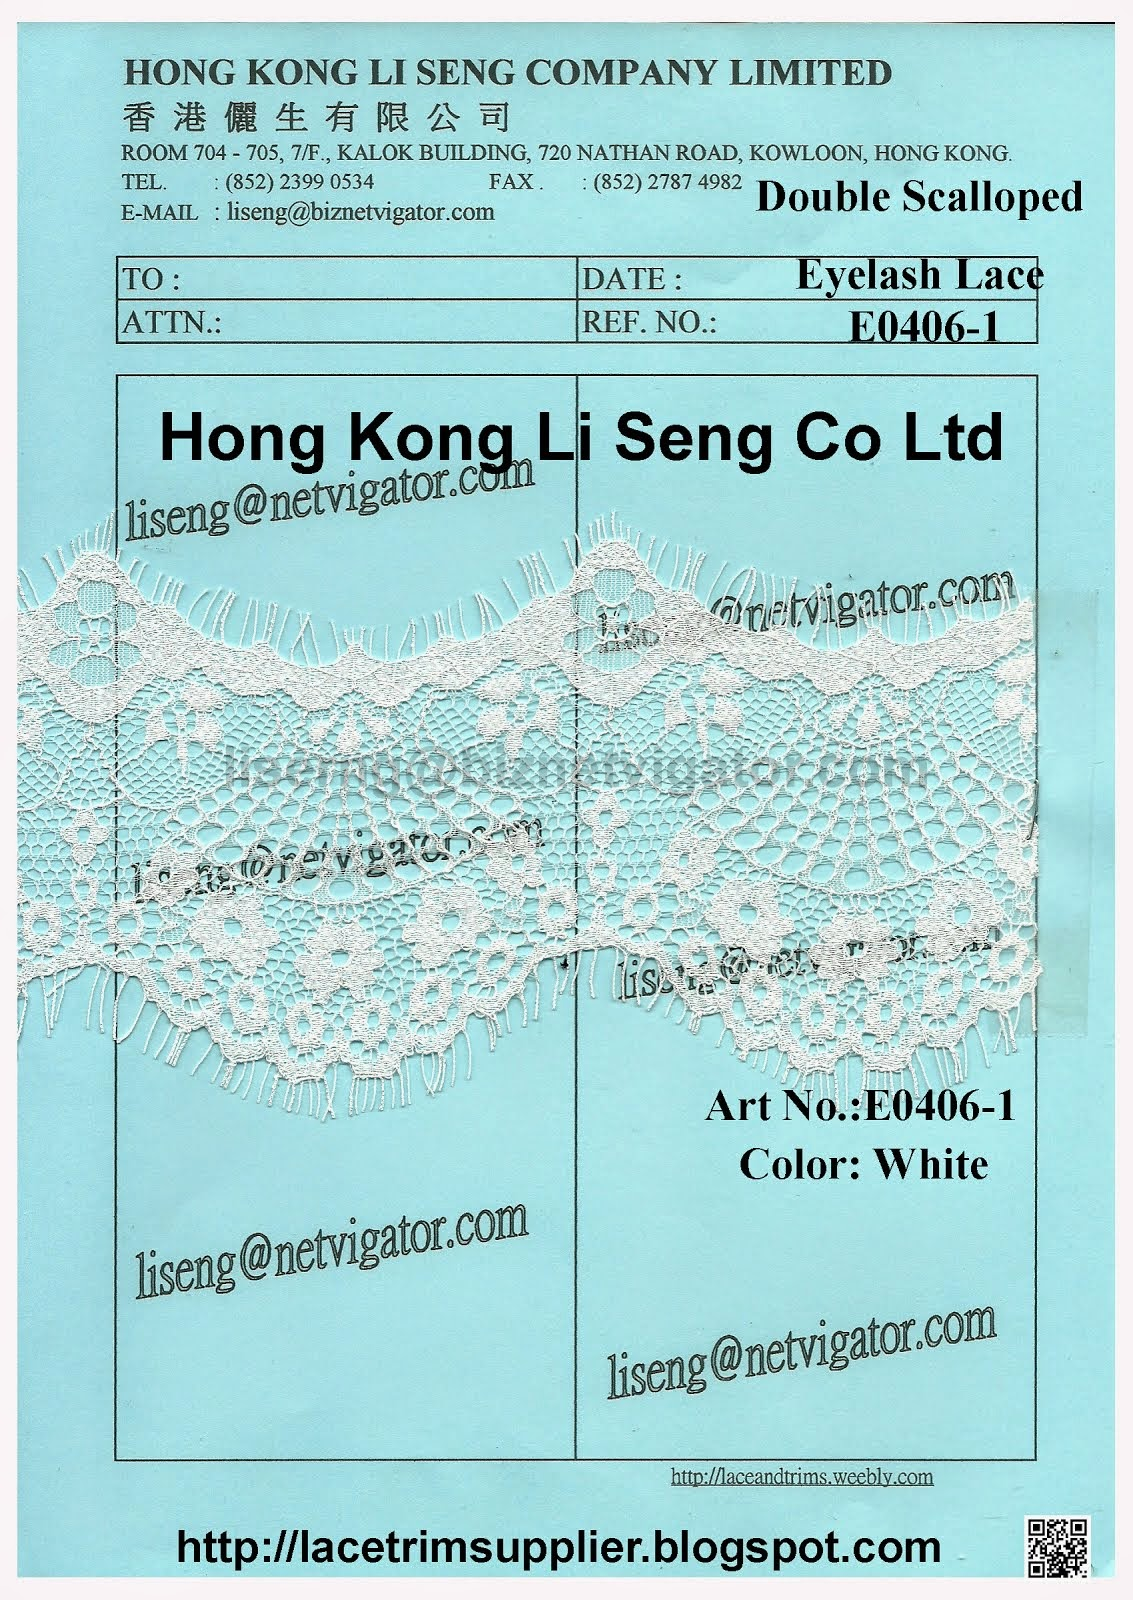 Double Scalloped Eyelash Lace Manufacturer - Hong Kong Li Seng Co Ltd